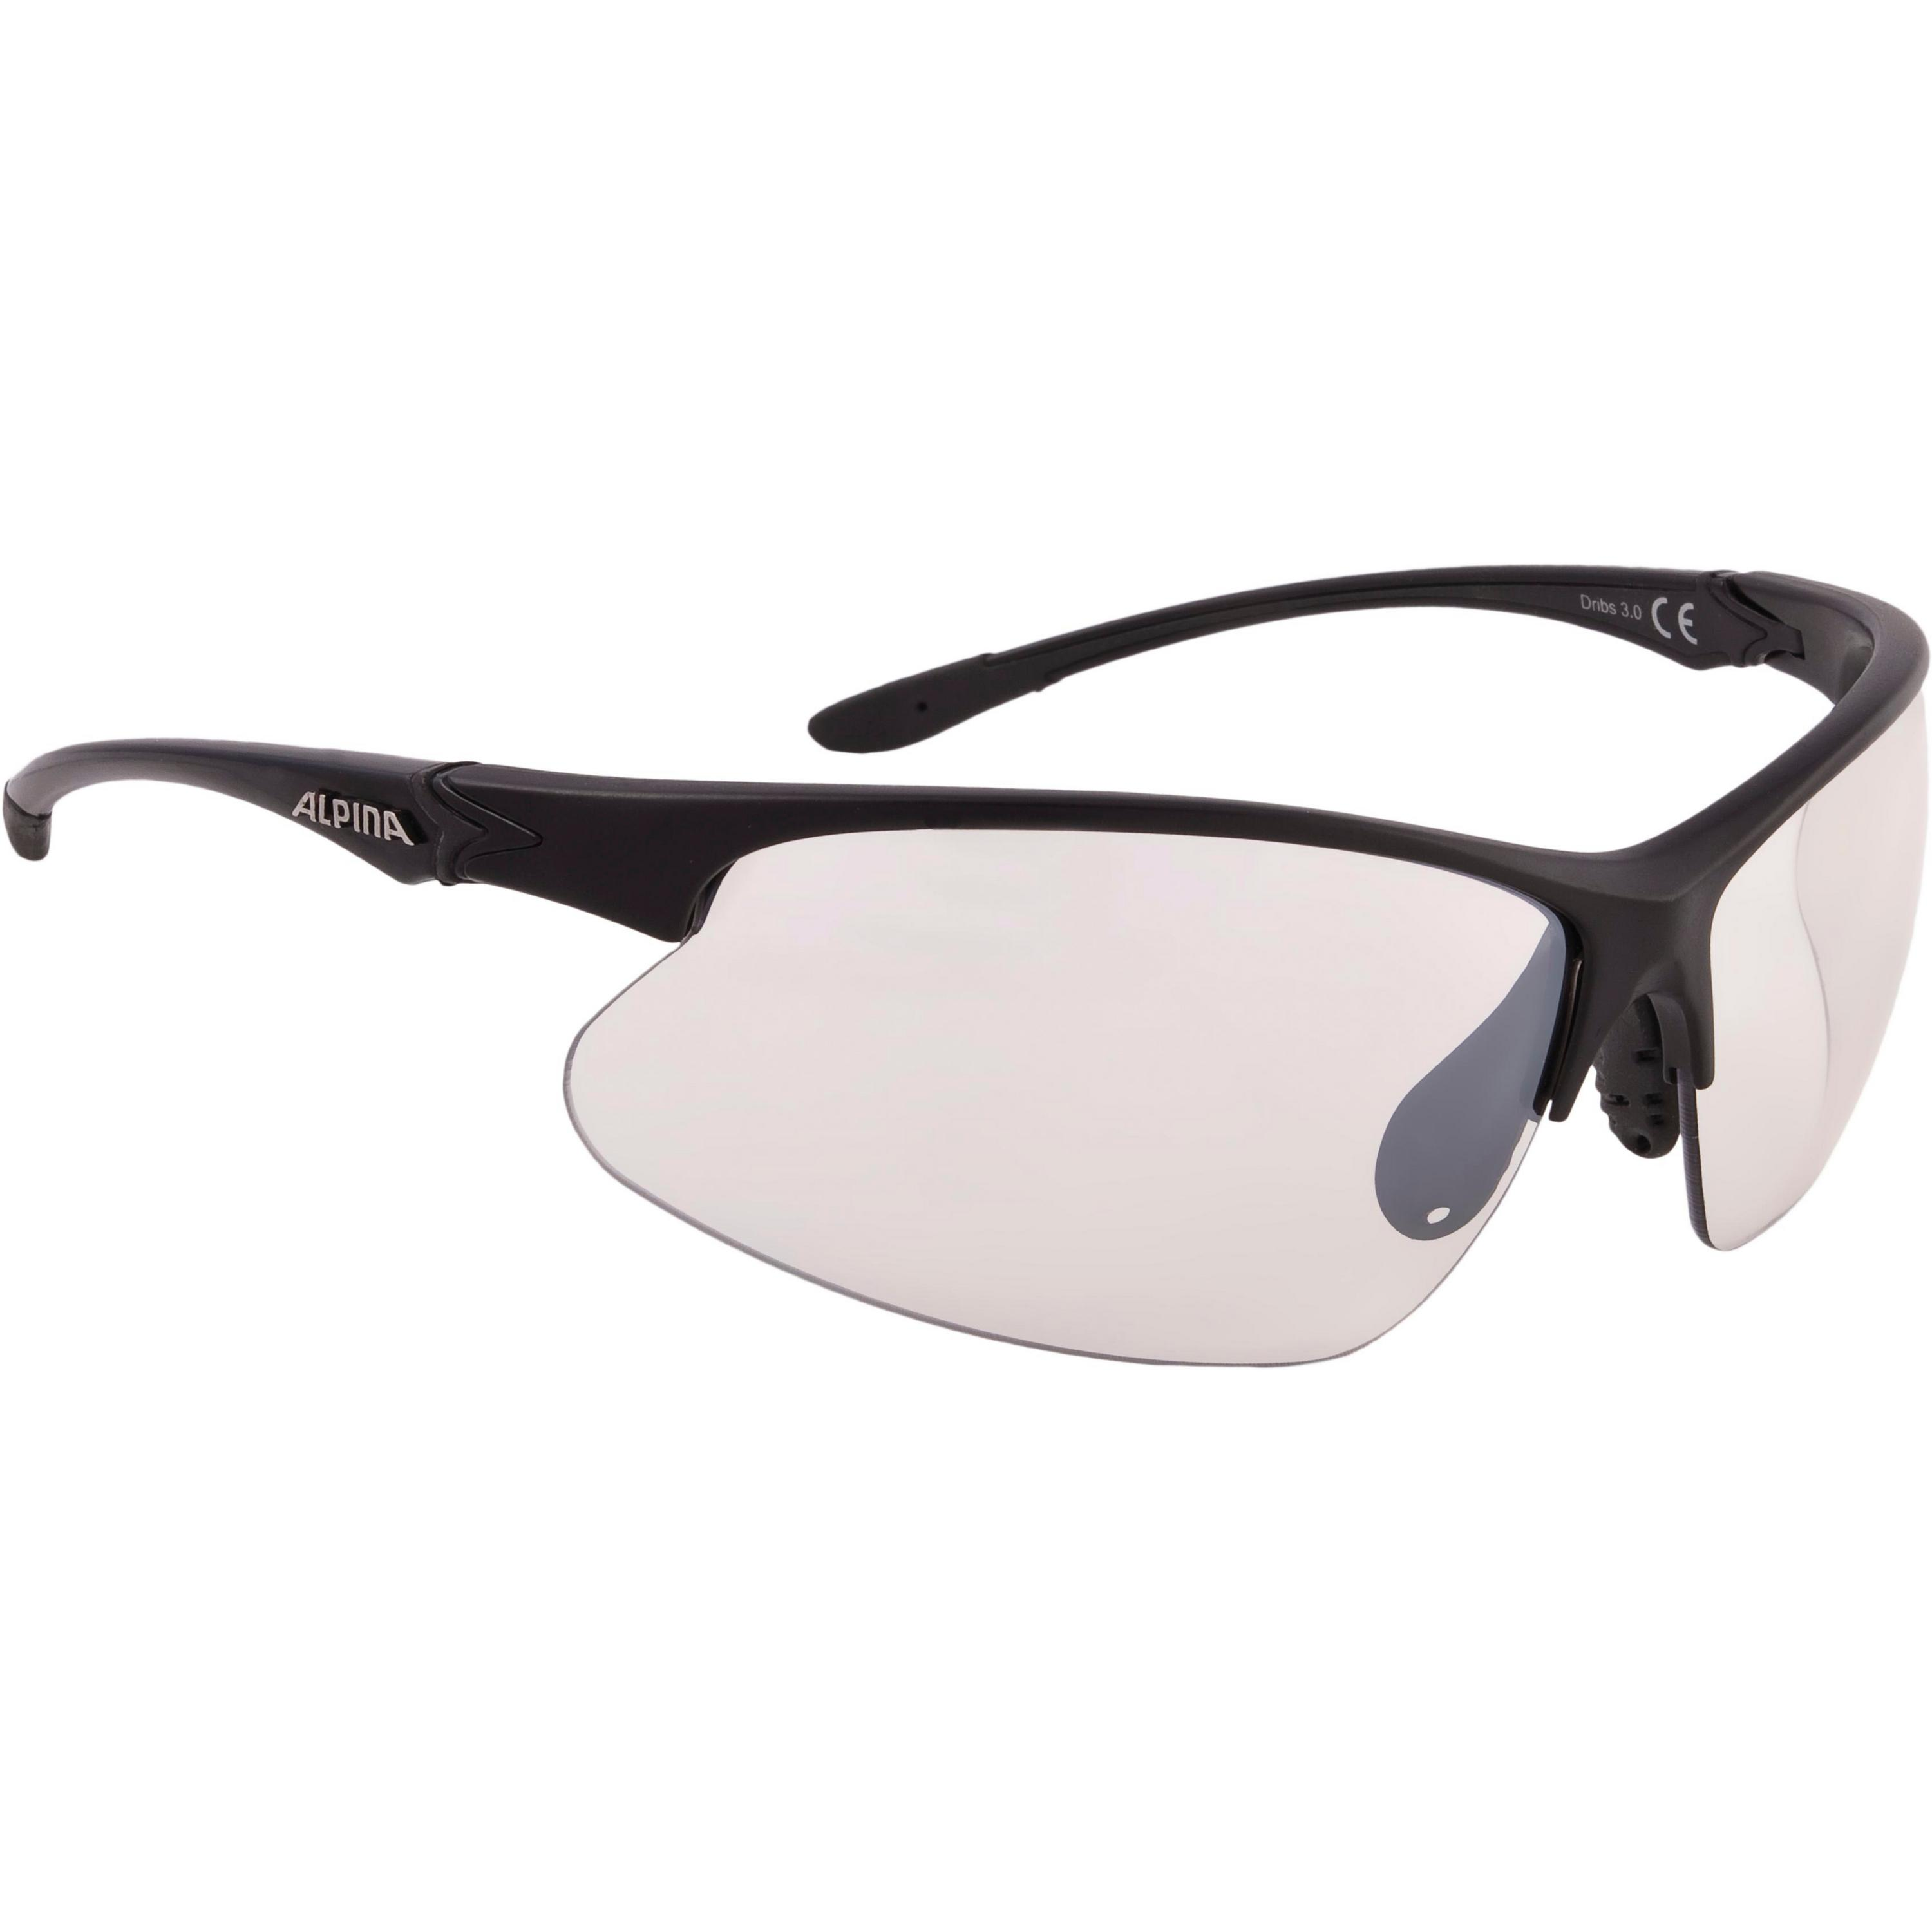 Image of ALPINA DRIBS 3.0 Sportbrille